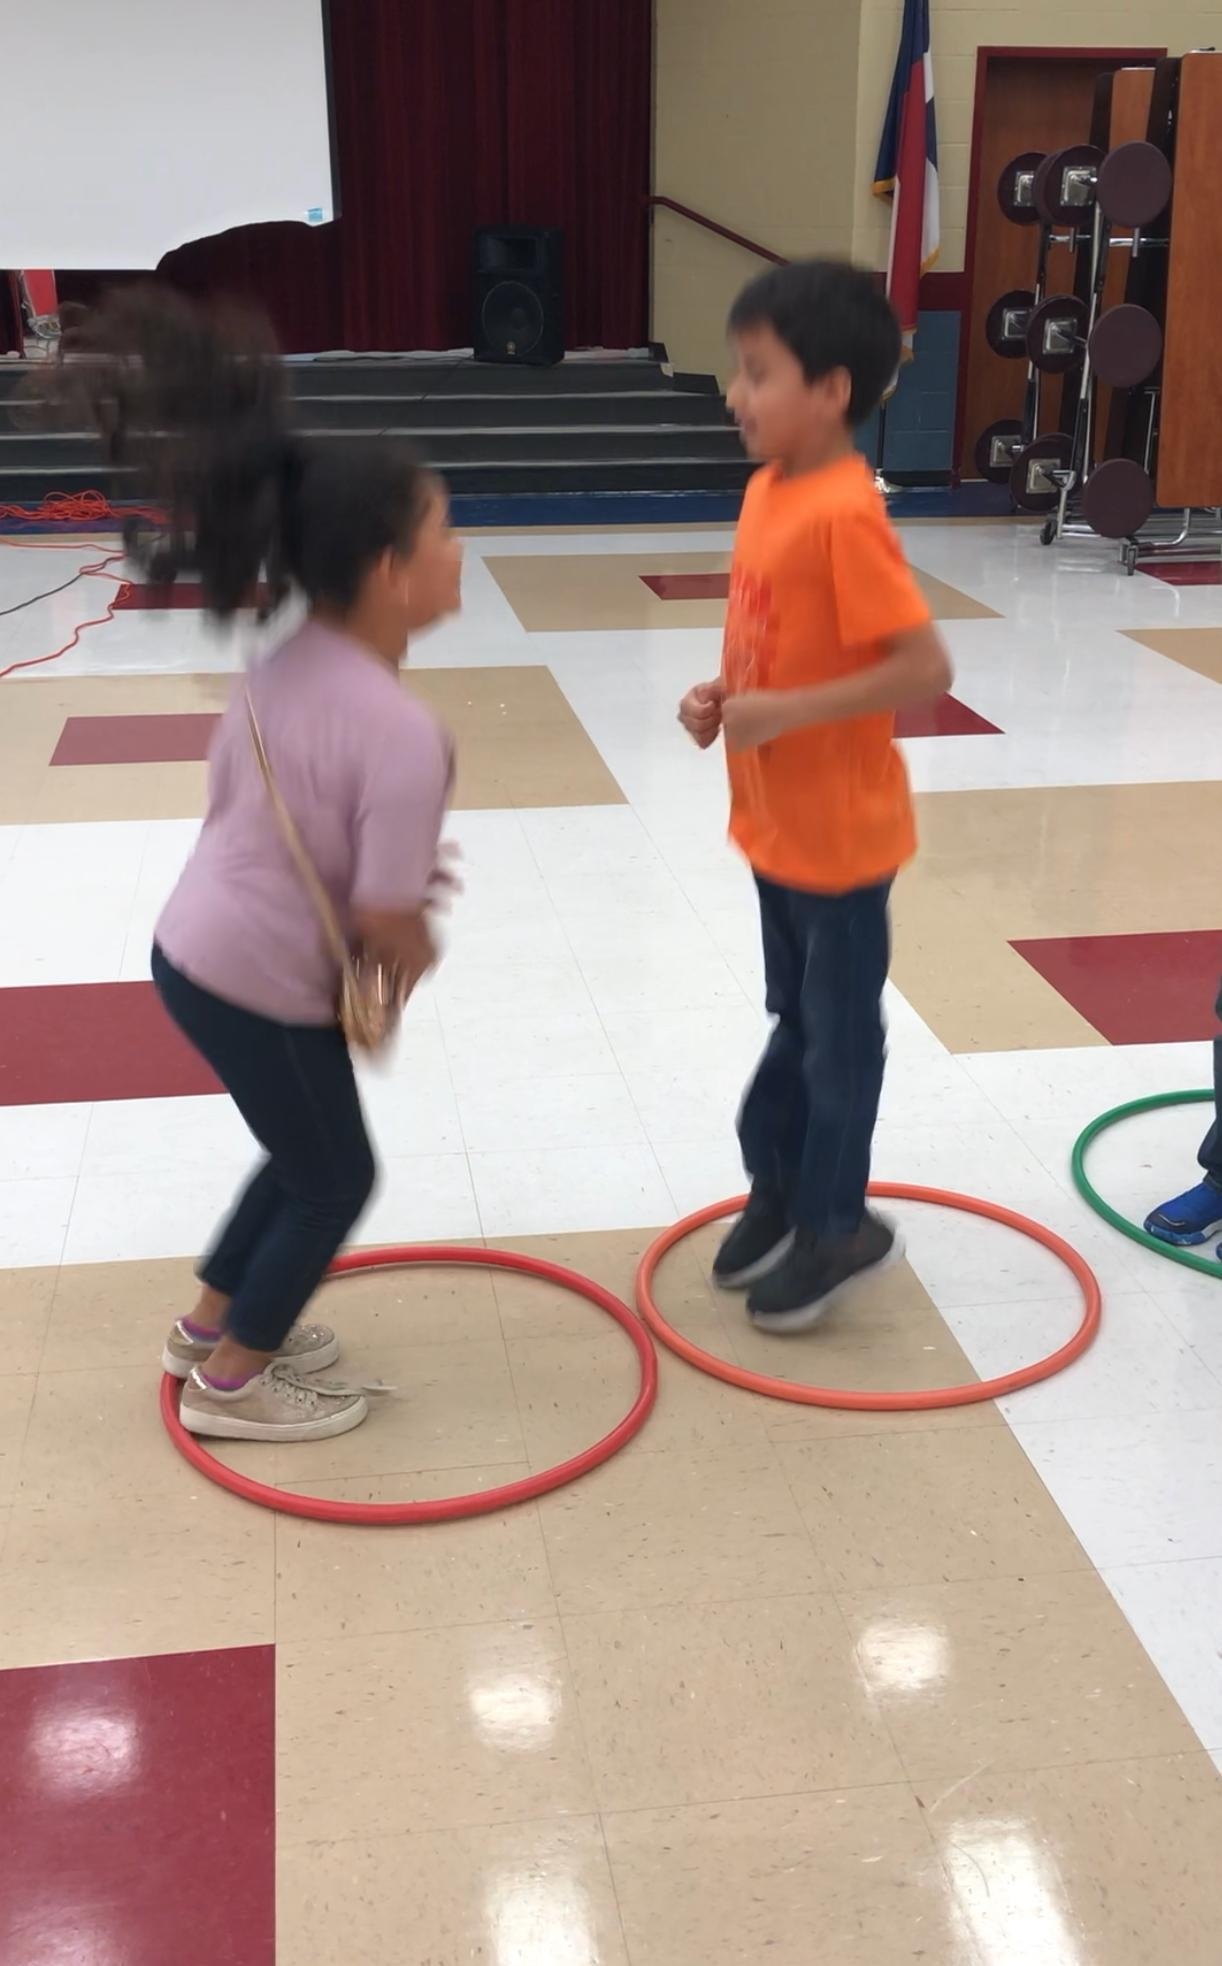 Students jumping in a hula hoop